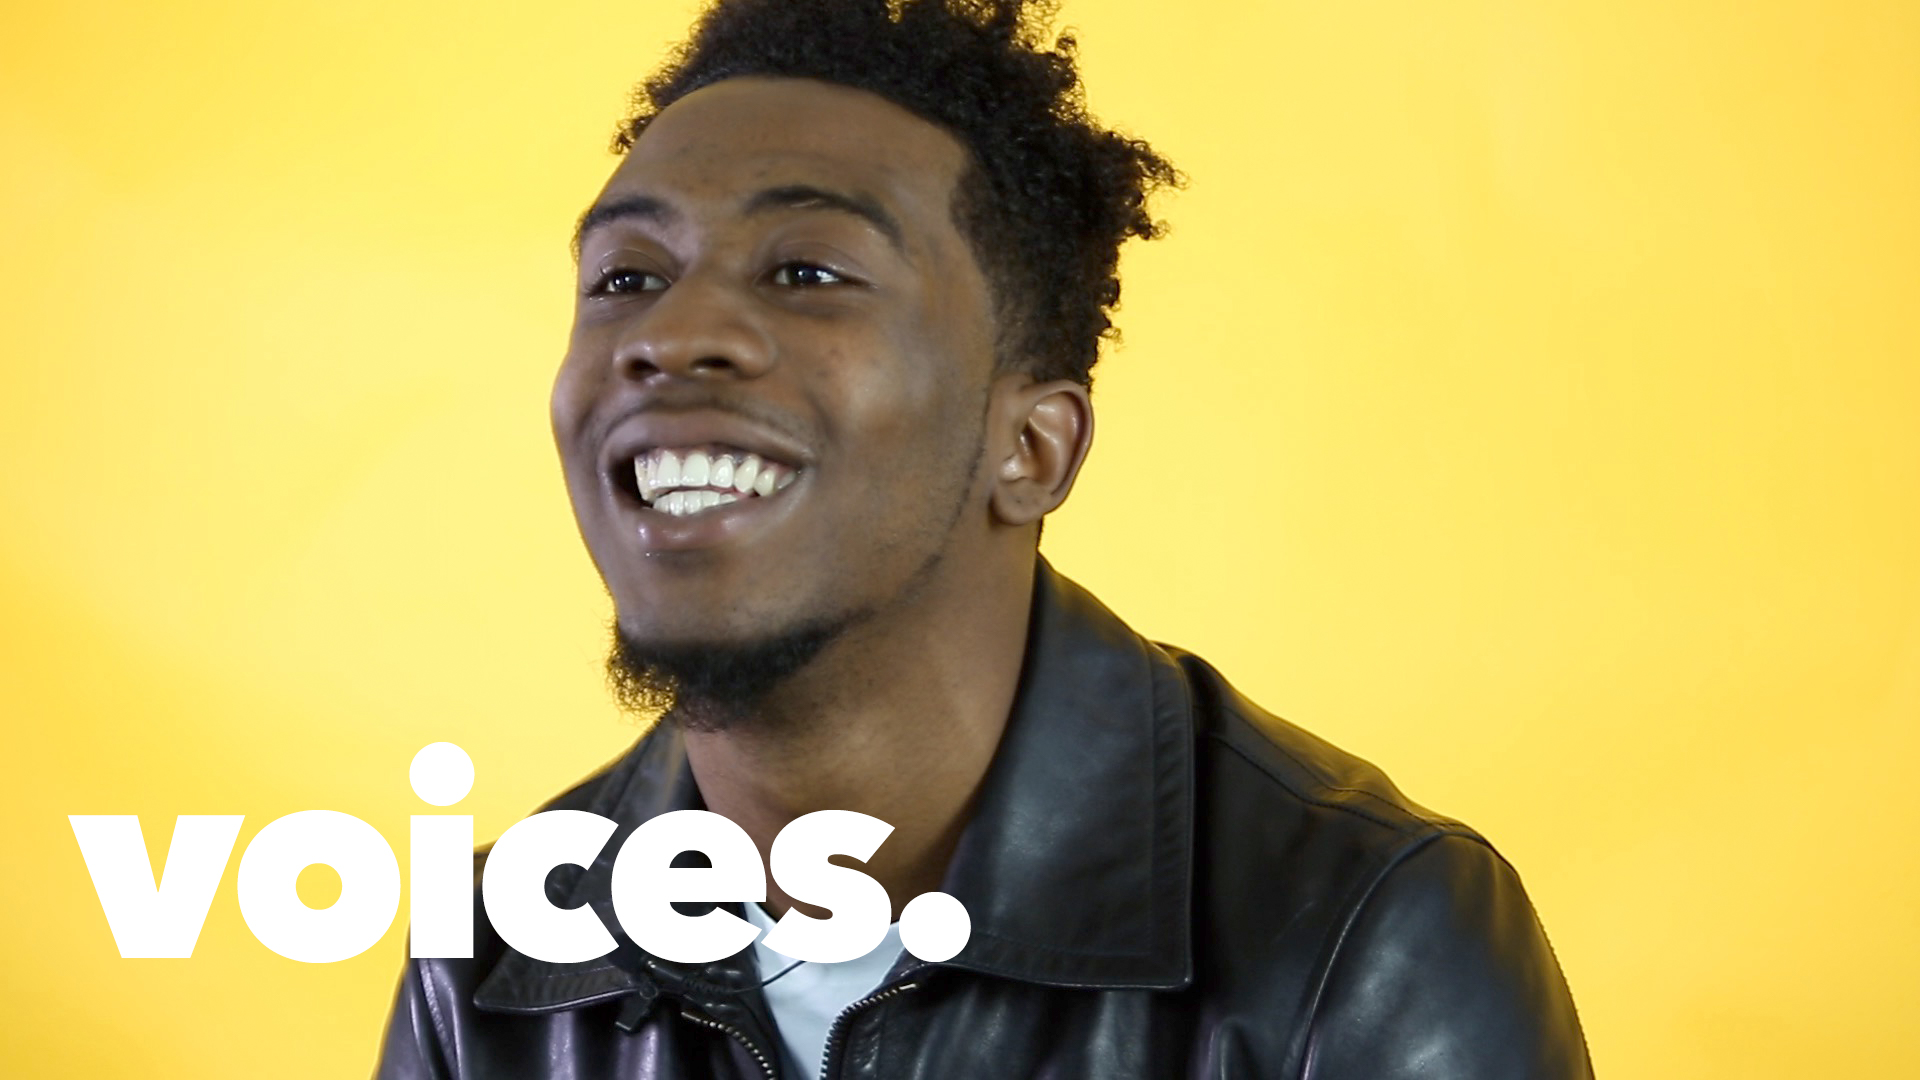 Voices: Desiigner